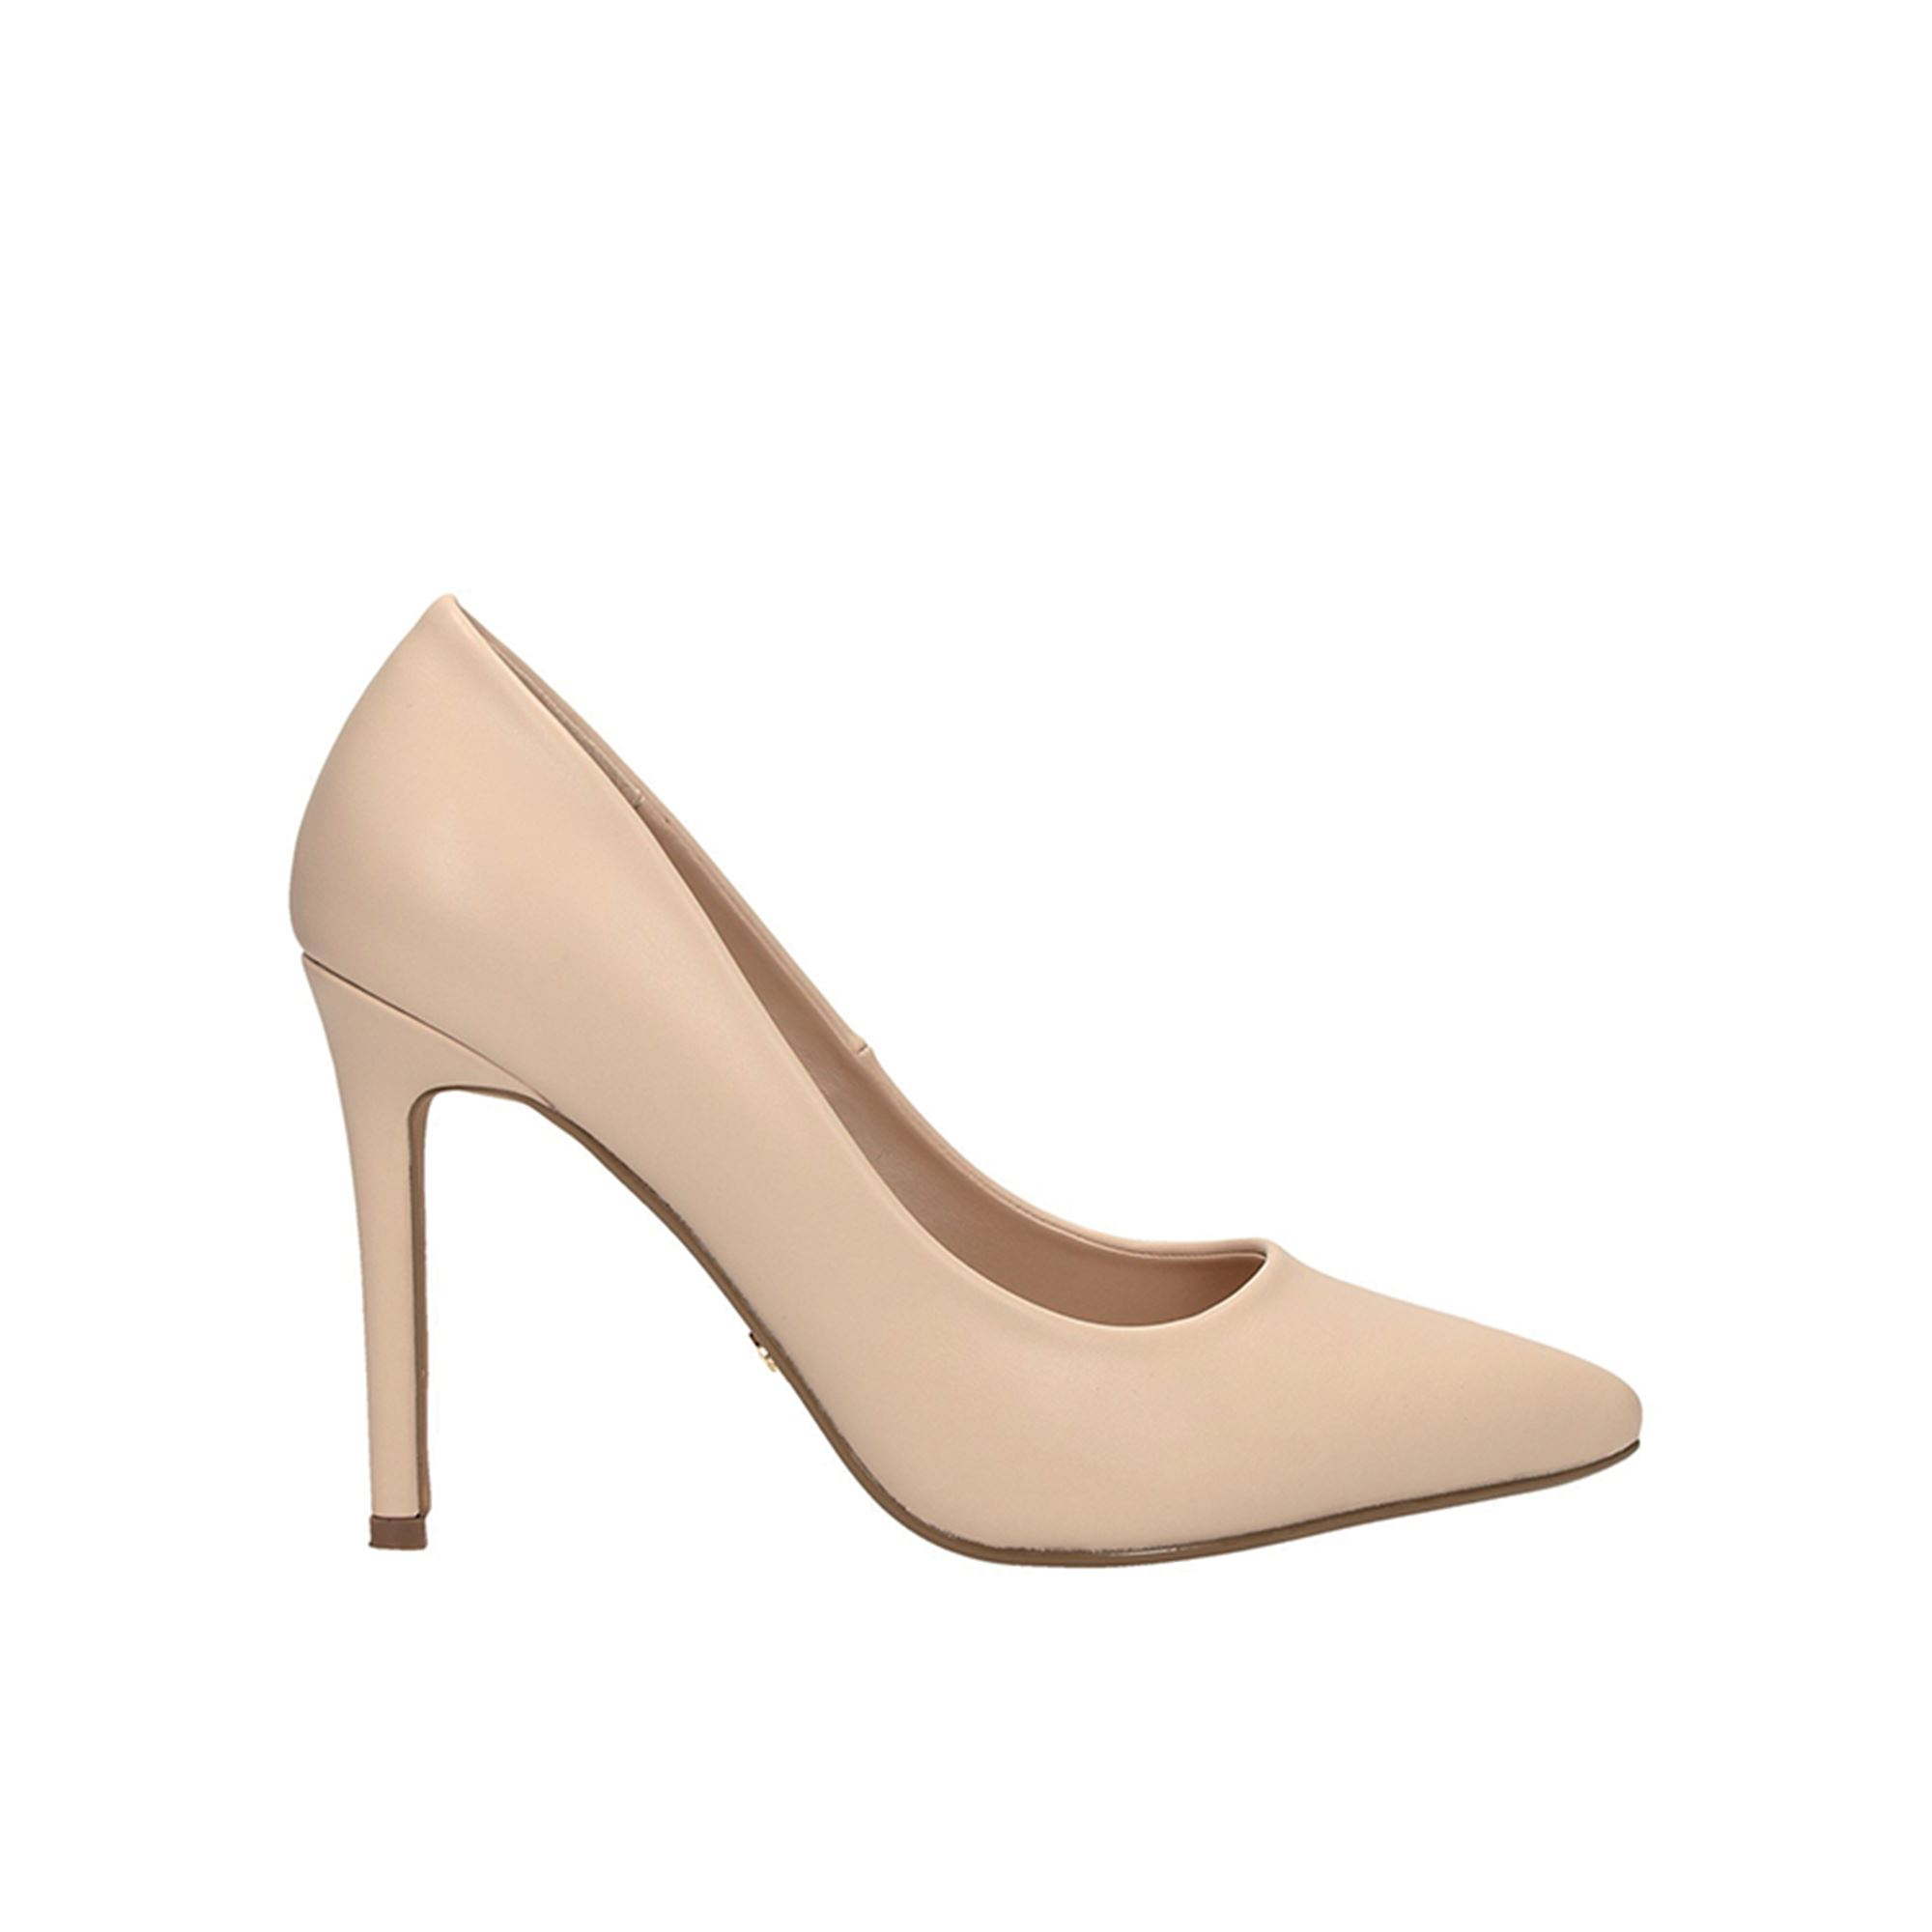 Tata Italia Shoes Woman Décolleté Beige 9206A-1